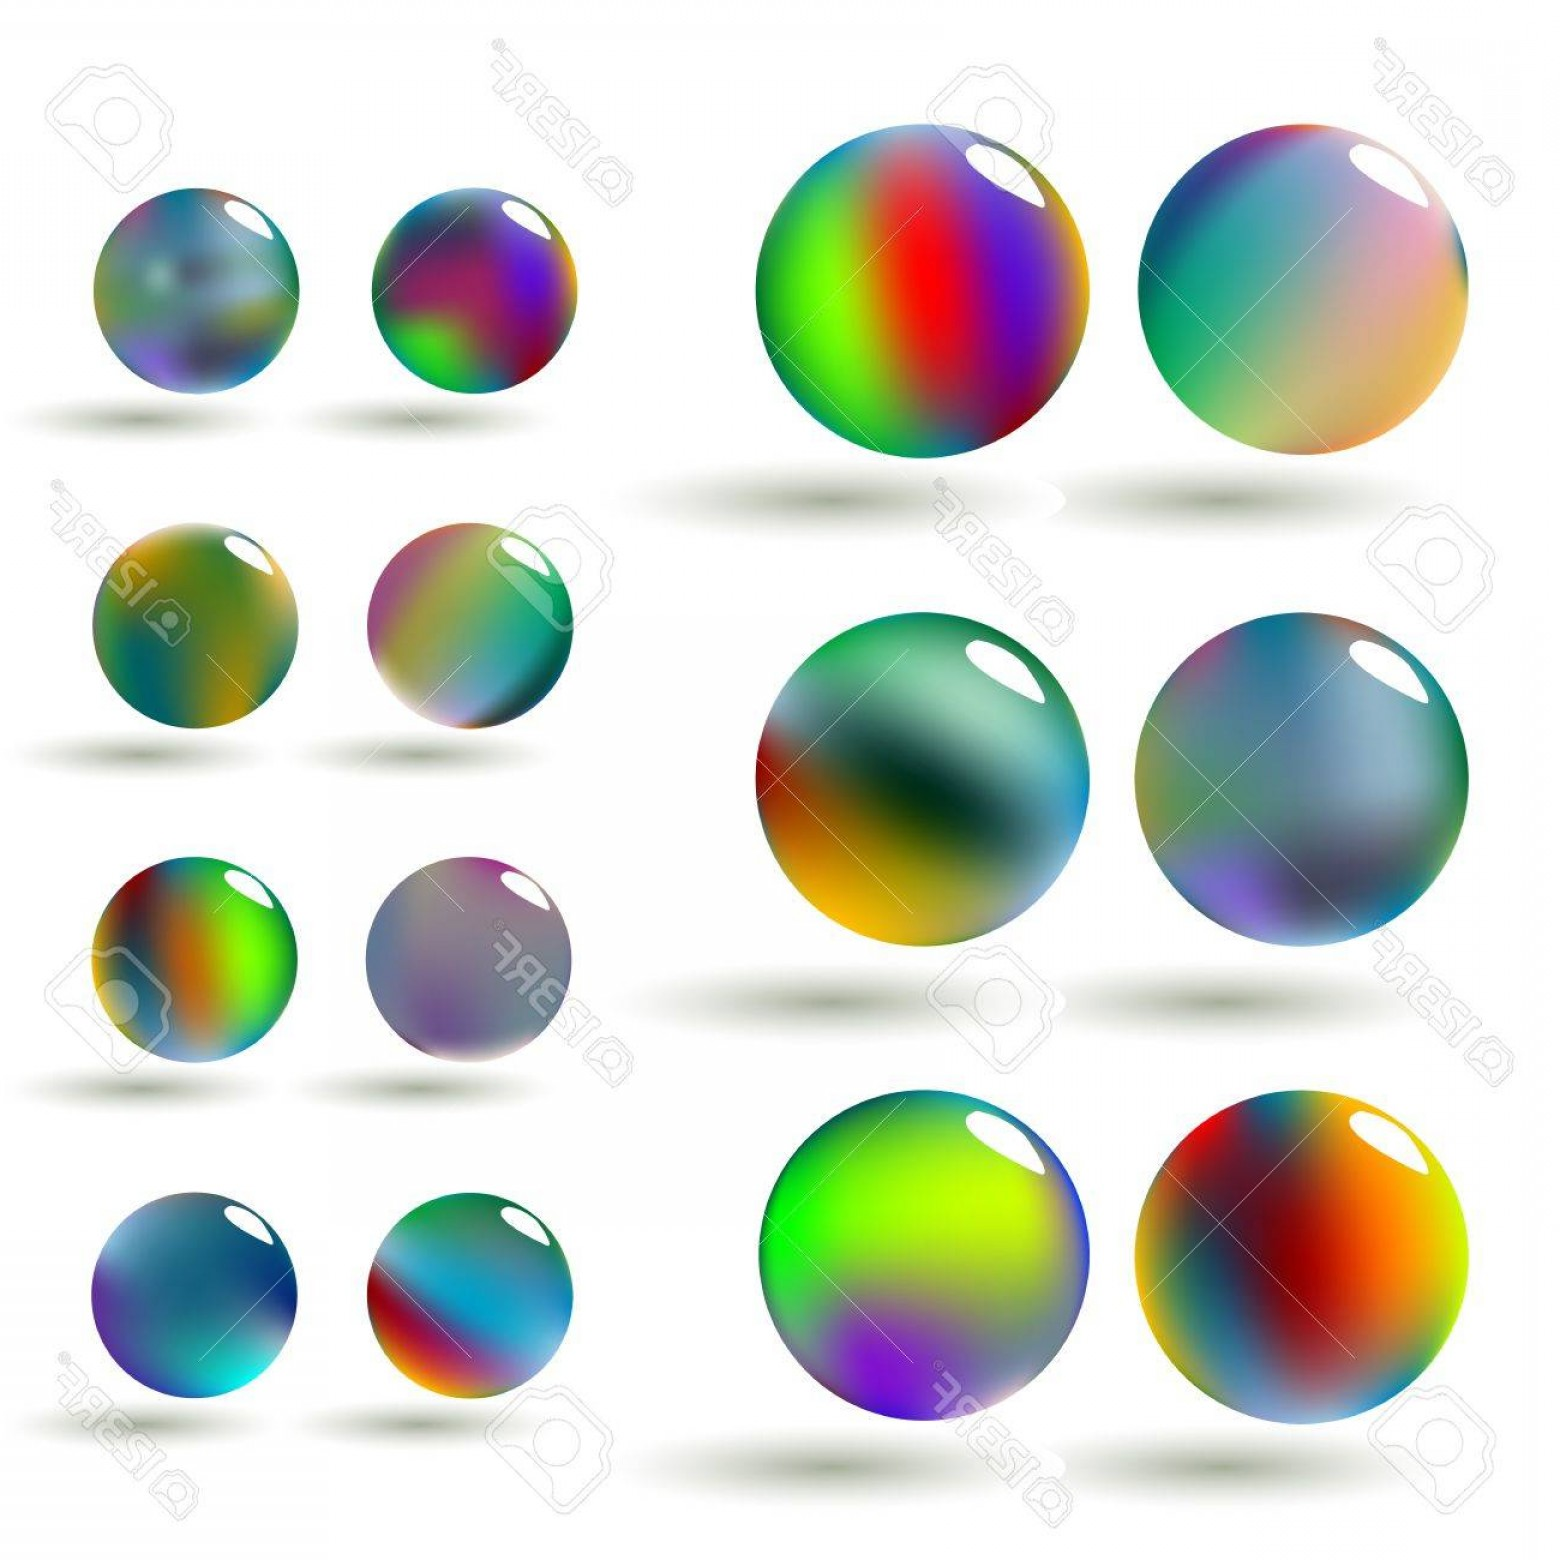 Vector Sphere Marble: Photoa Set Of Glossy Colorful Vector Spheres